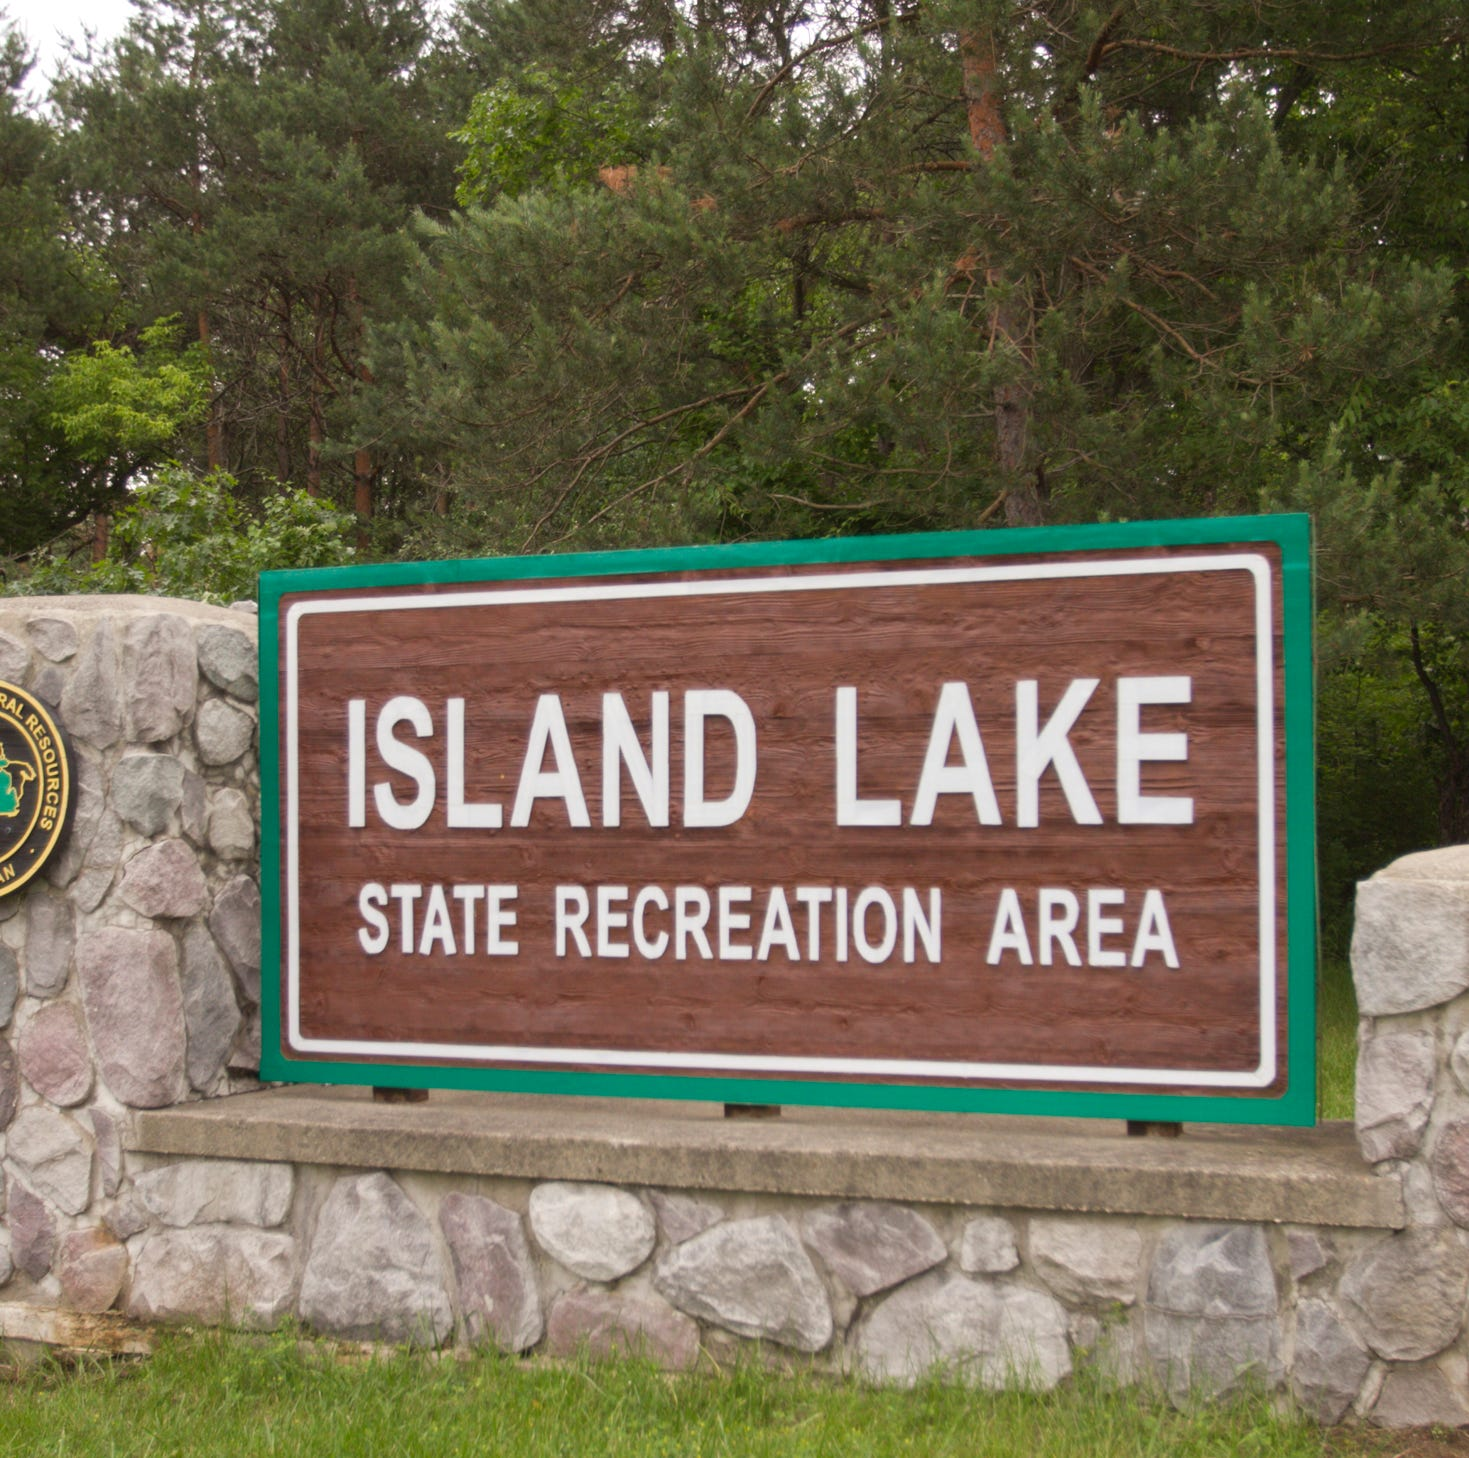 Bicyclist critically injured in crash in Island Lake State Recreation Area